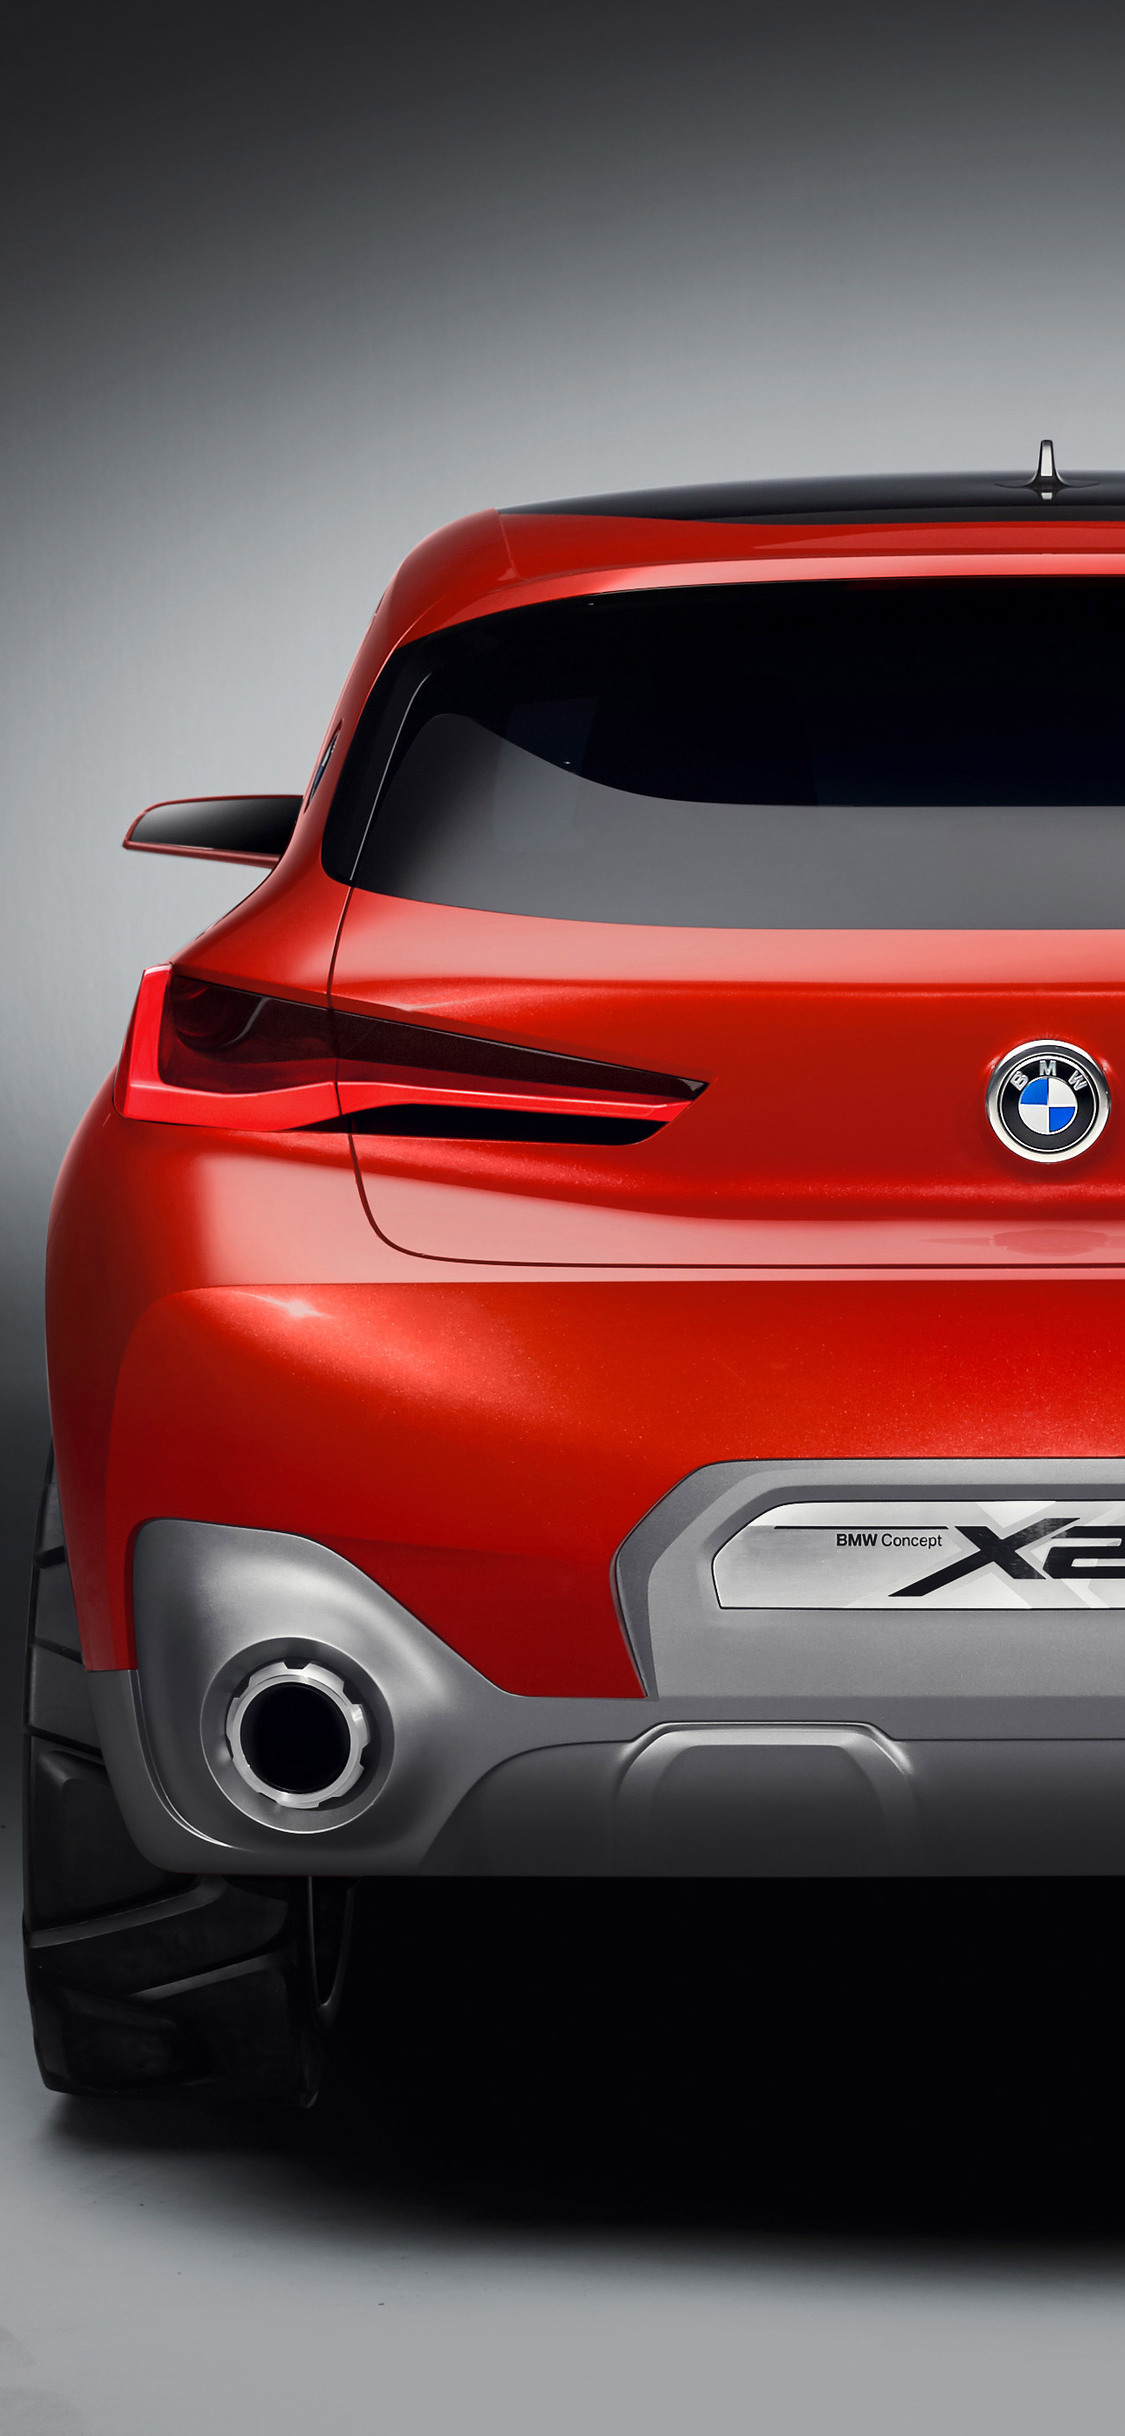 2018-bmw-x2-concept-car-rear-pic.jpg